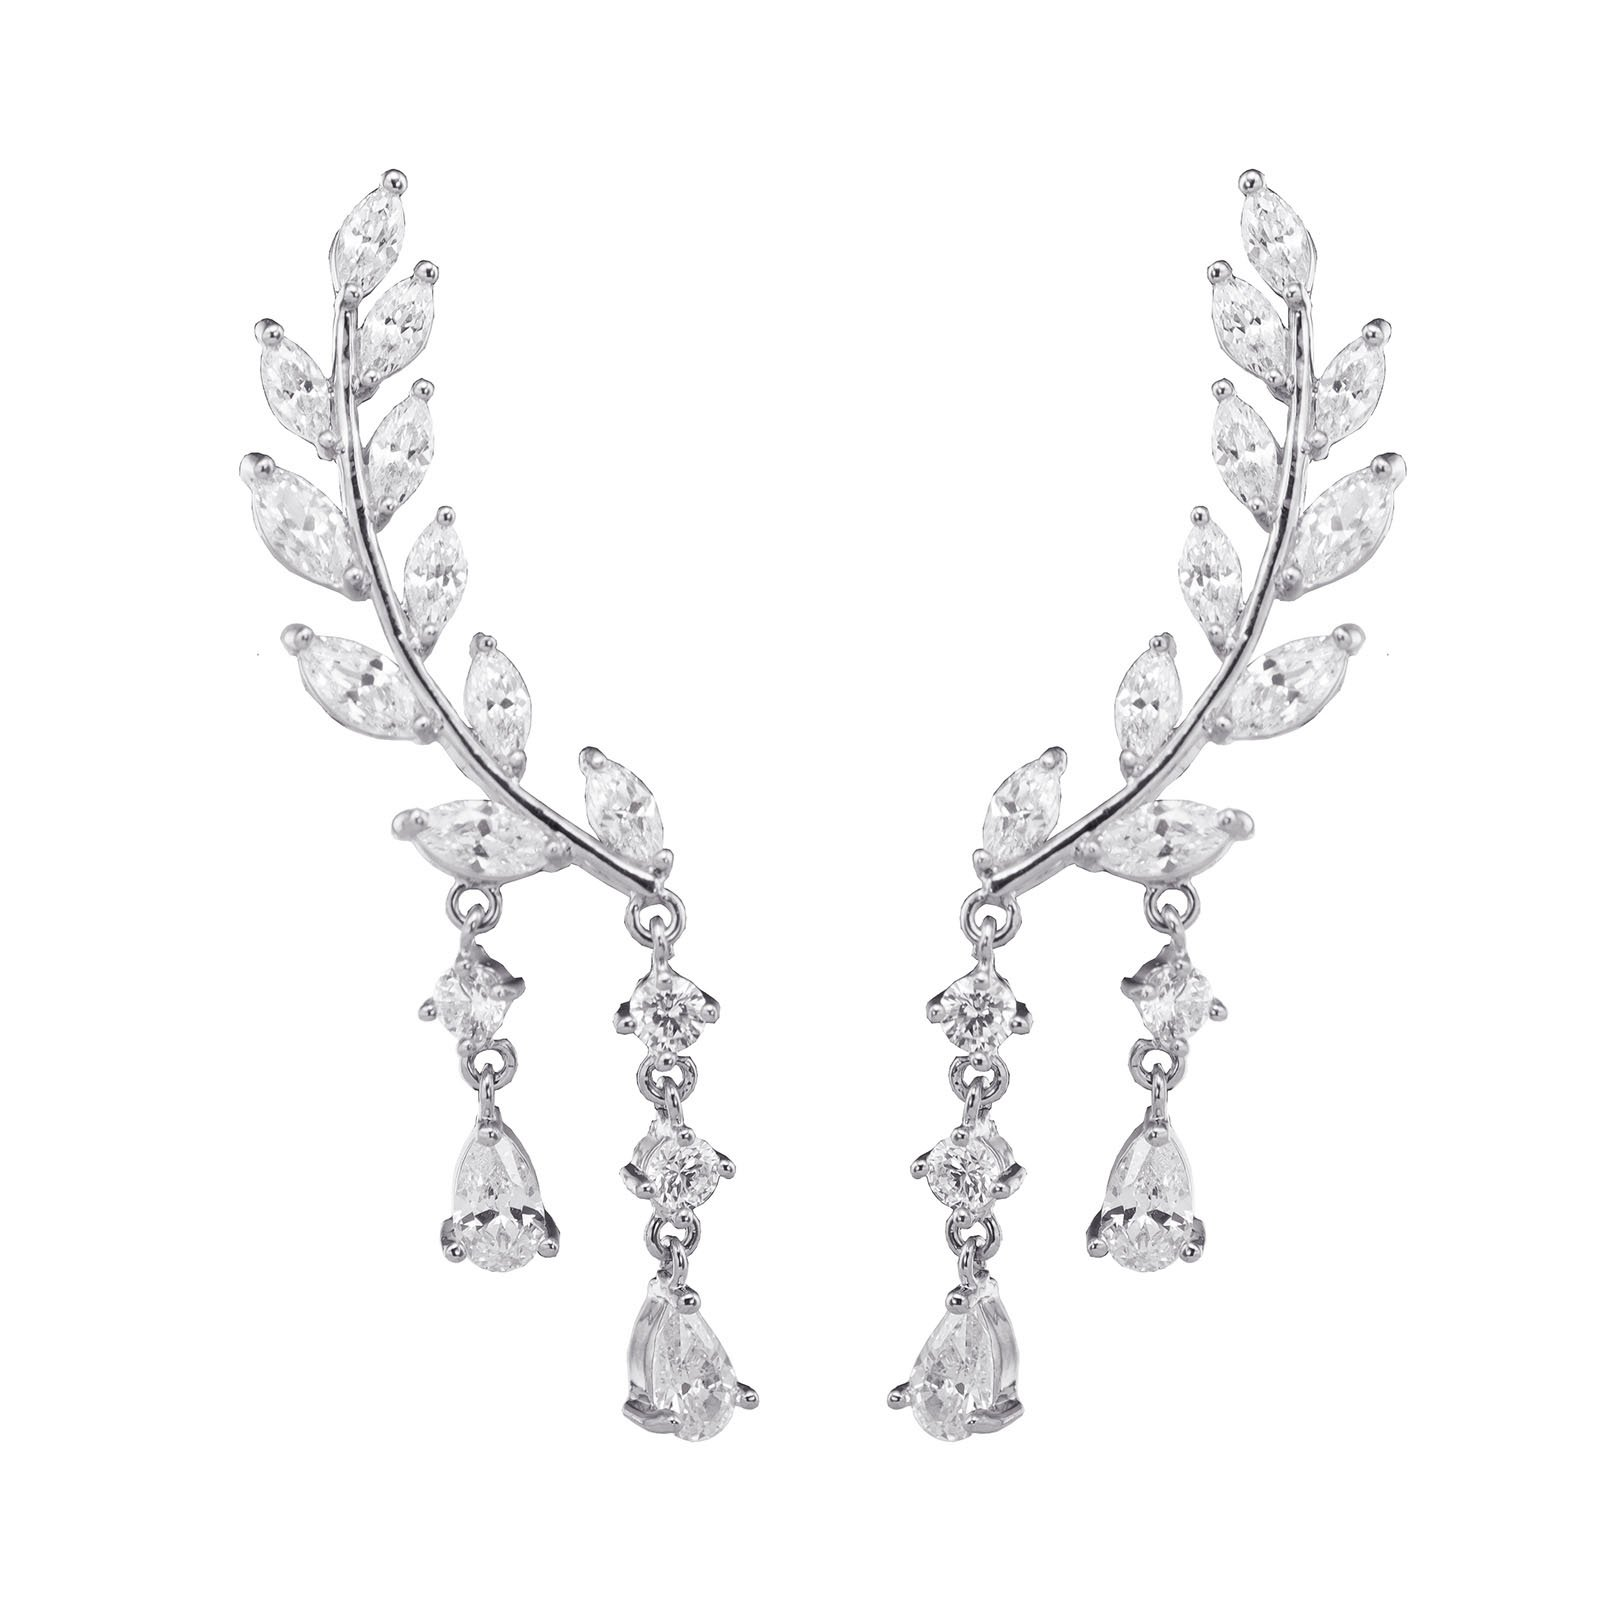 Chichinside CZ Crystal Leaves Ear Cuffs Climber Earrings Sweep up Ear Wrap Pins 1 Pair (silver-plated-base)